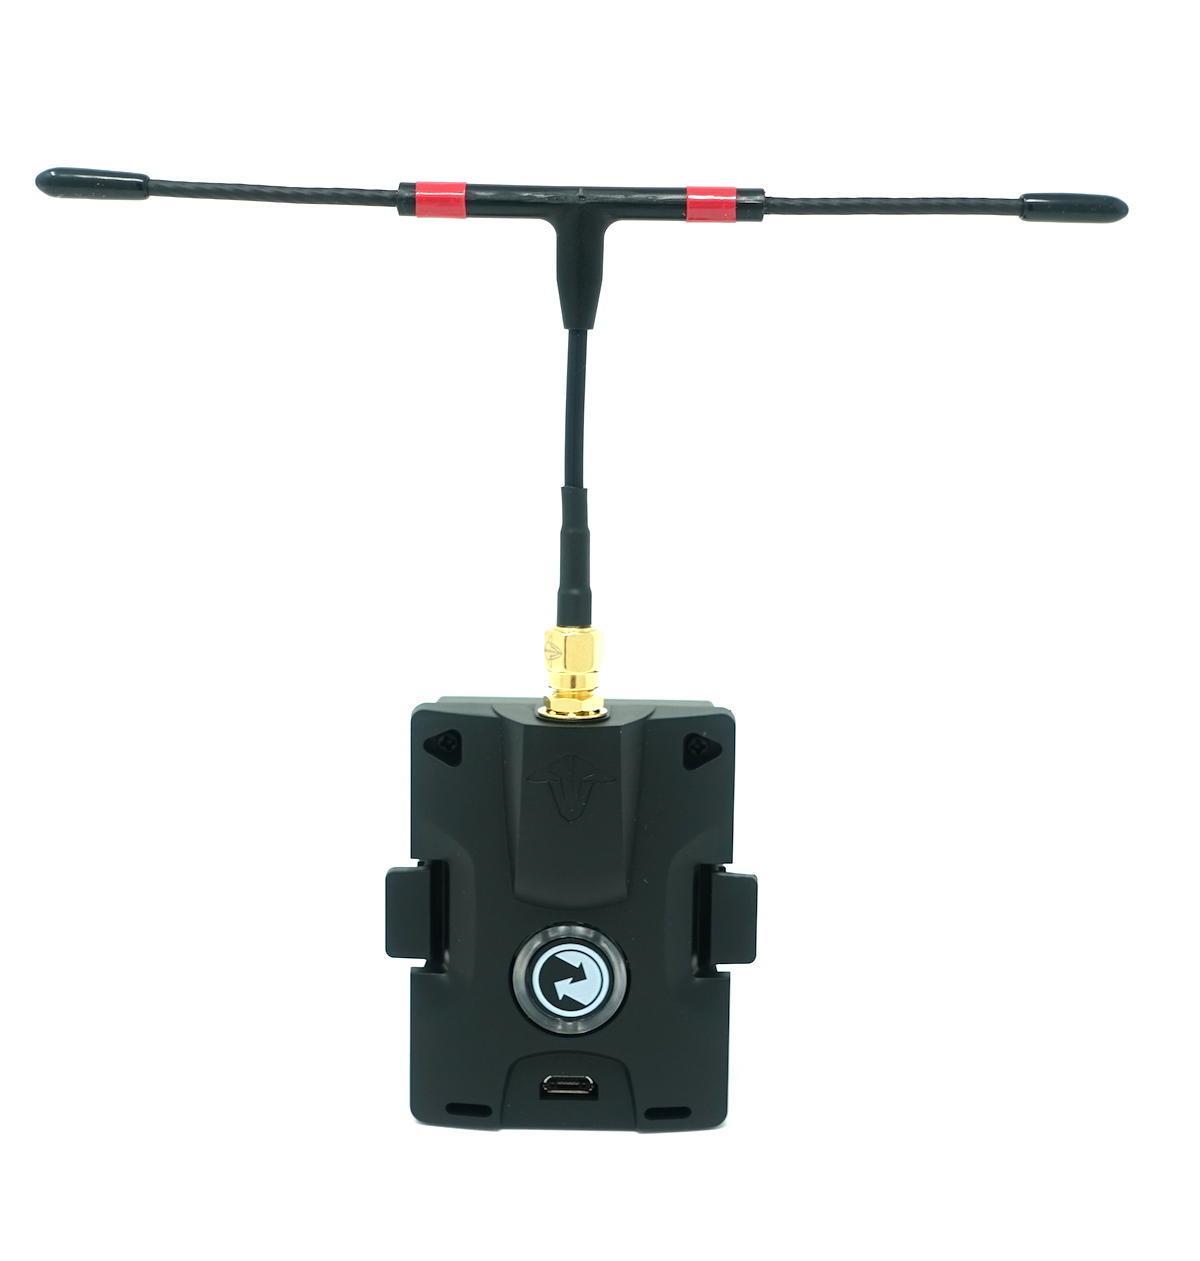 TBS Crossfire Micro TX front view with immortal t antenna